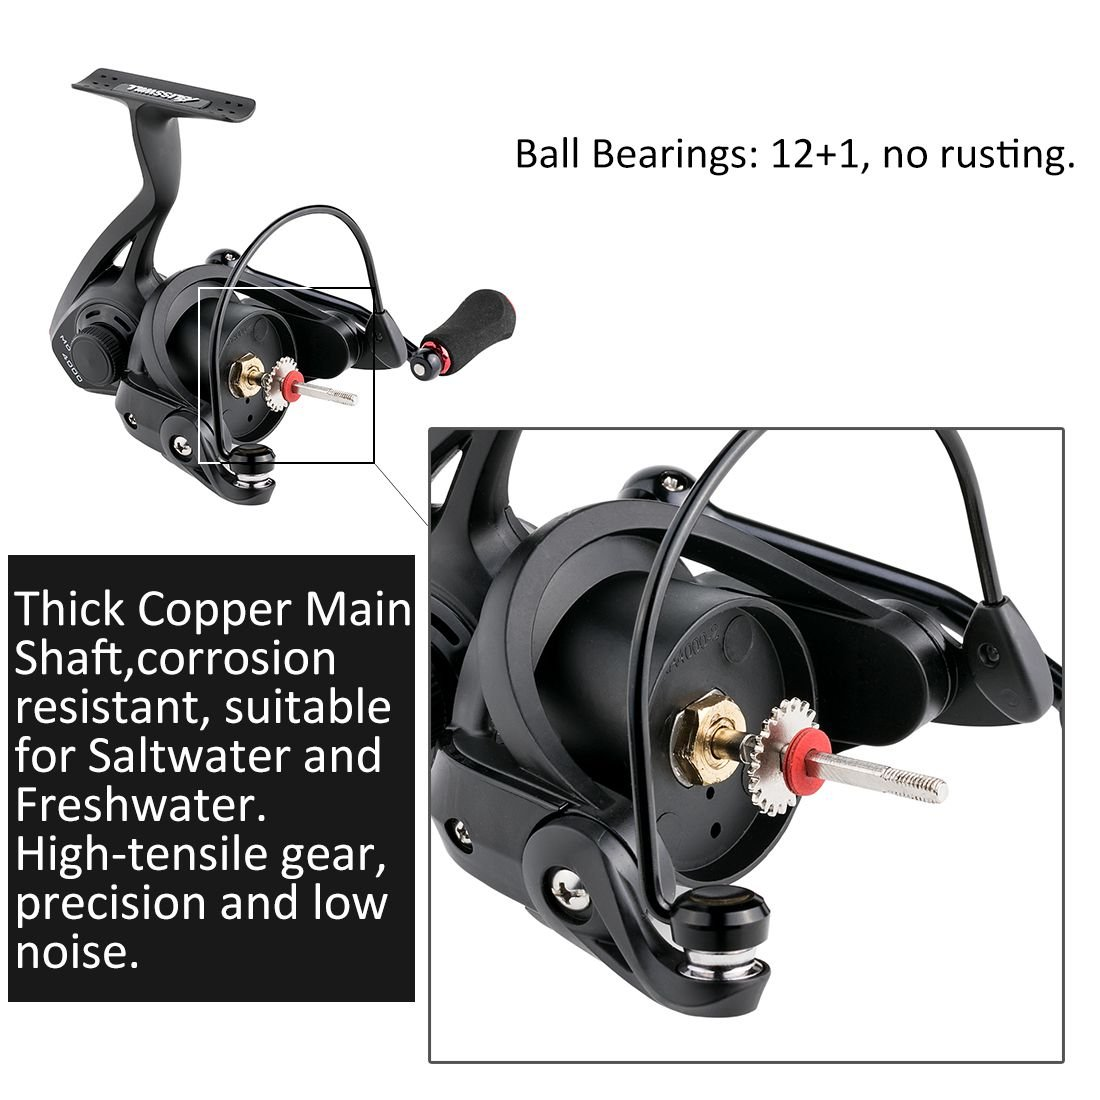 BLISSWILL 4000 Spinning Reel